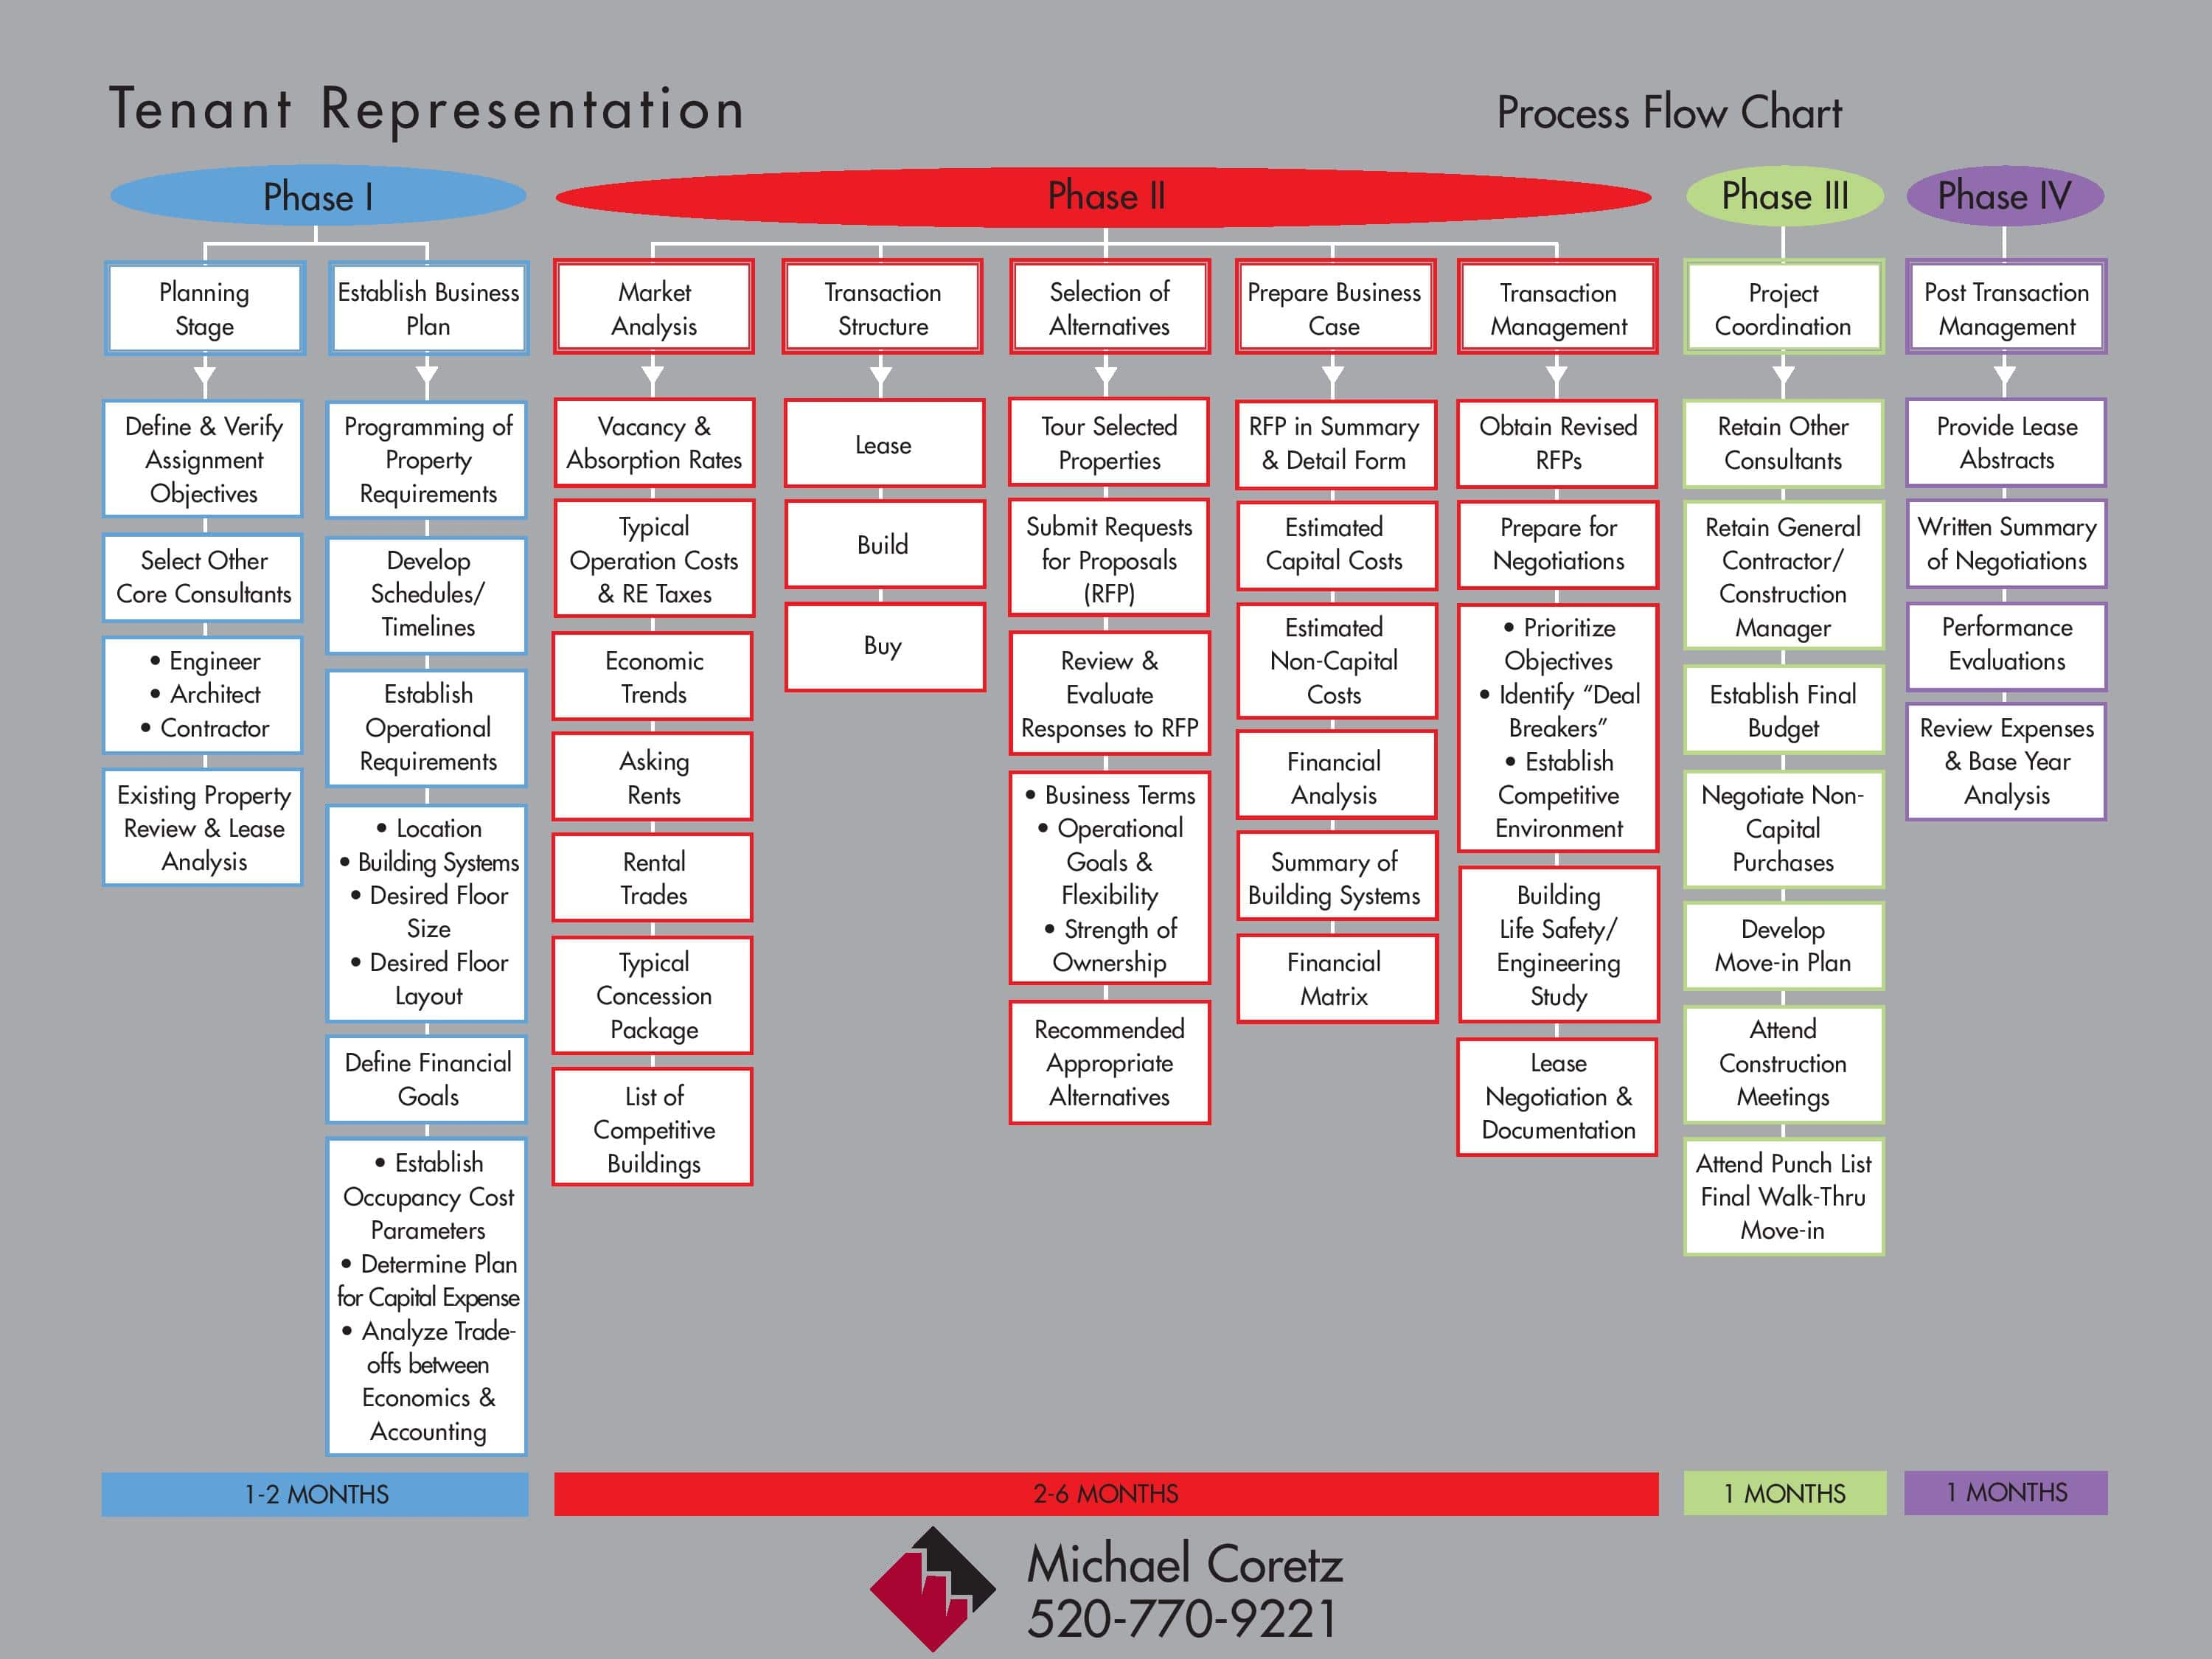 Tenant Representation Process Flow Chart